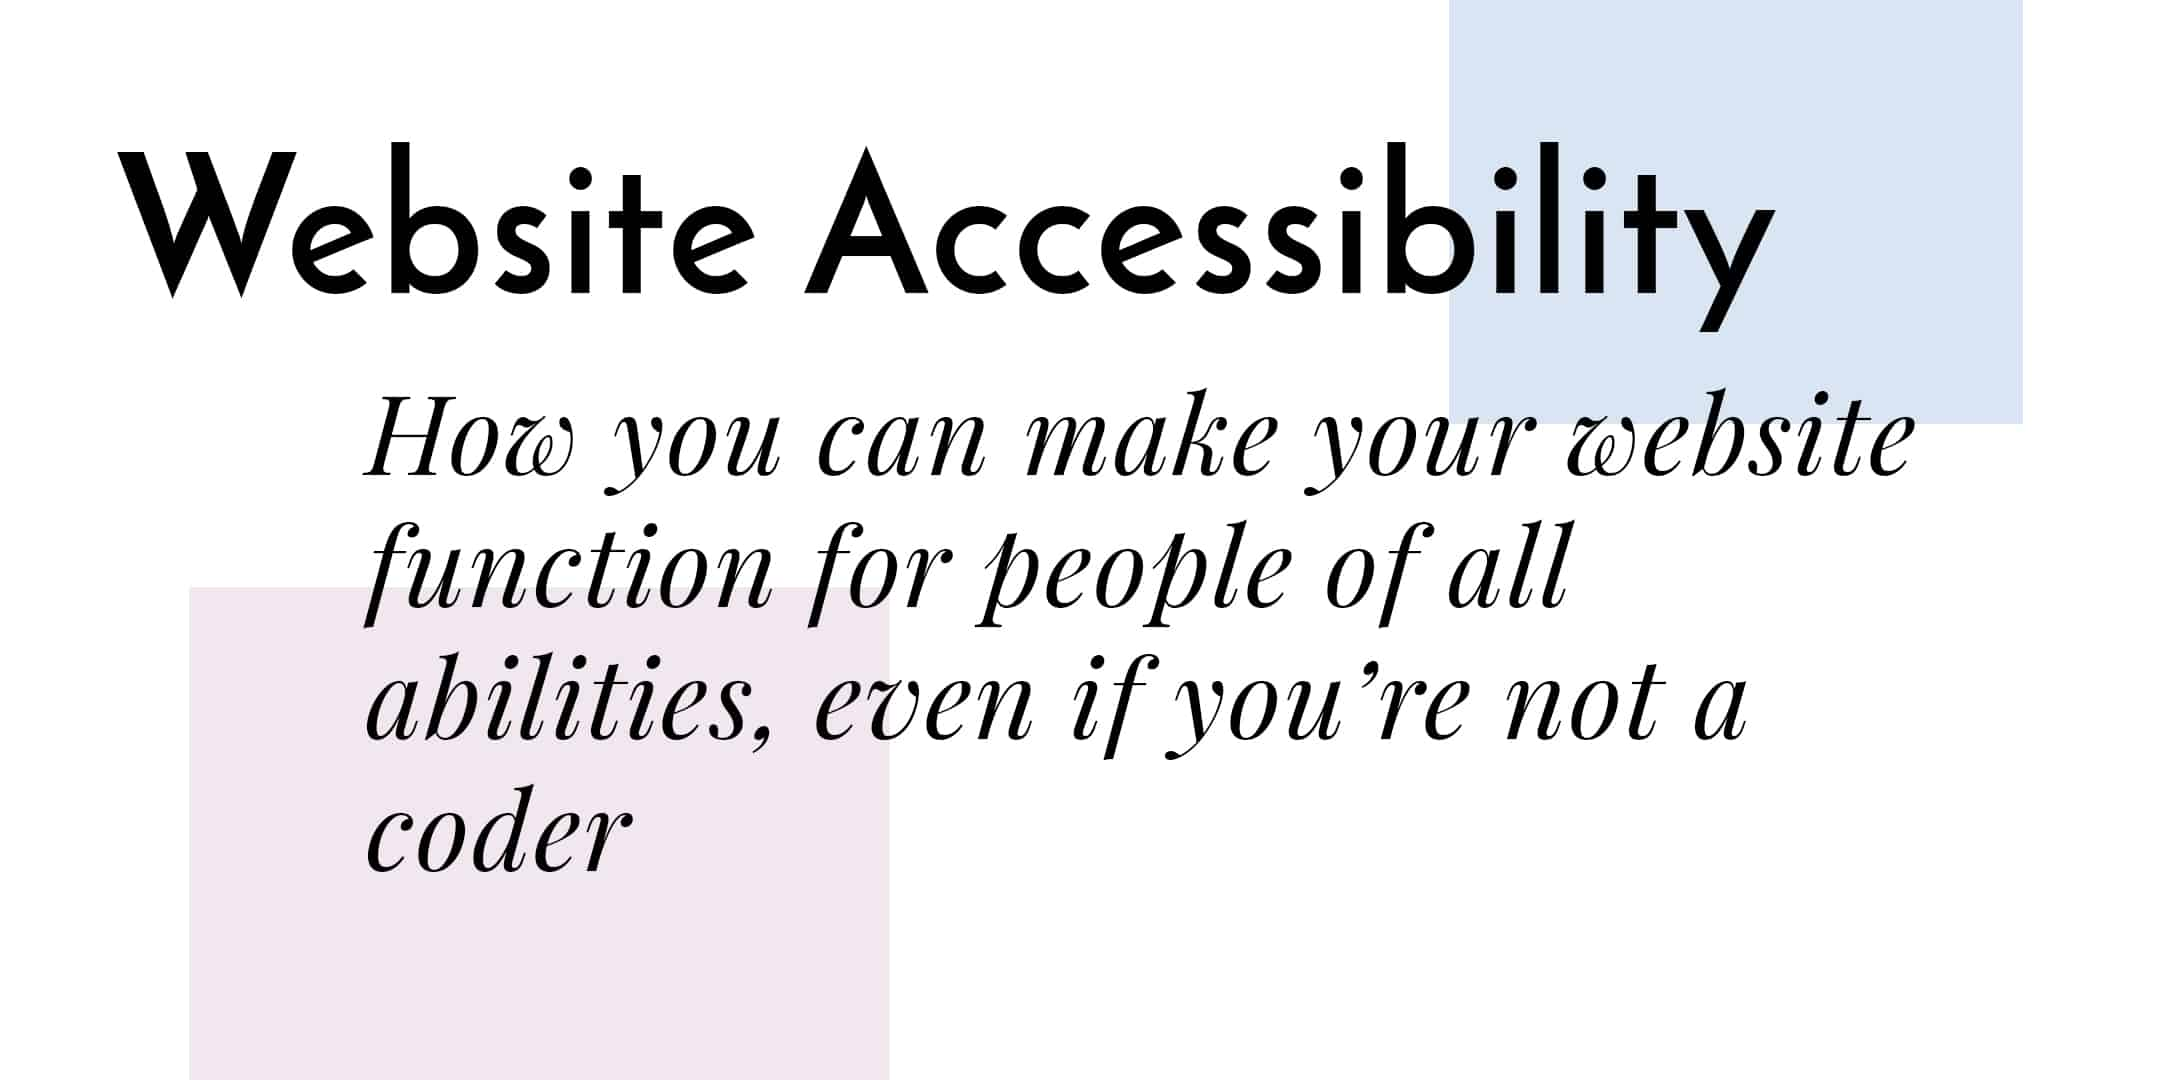 Website Accessibility - How you can make your website function for people of all abilities, even if you're not a coder